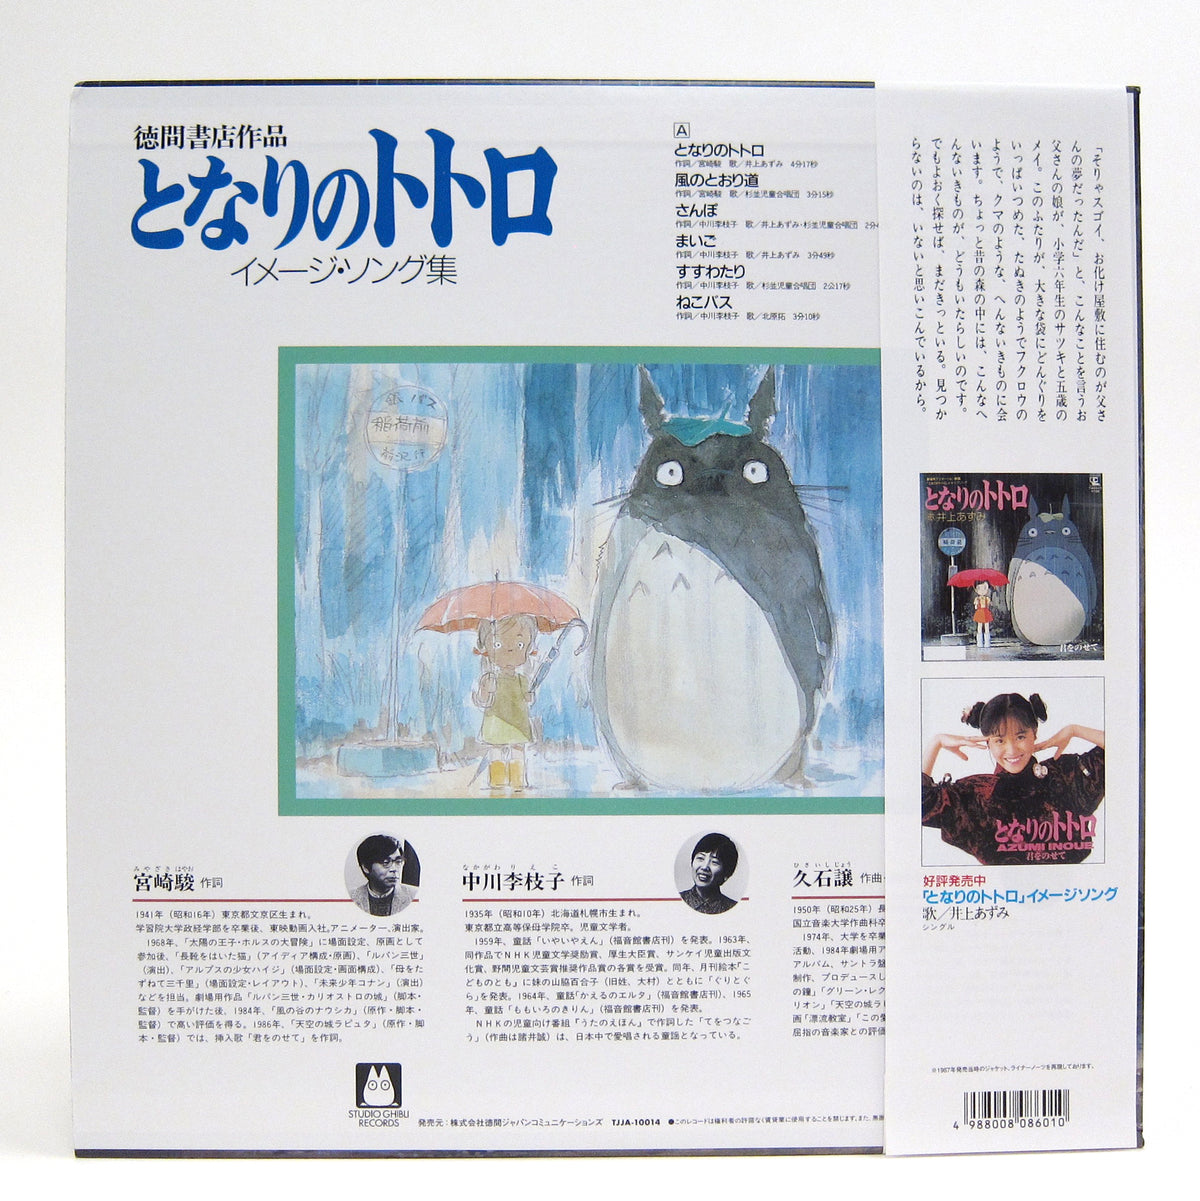 Joe Hisaishi: My Neighbor Totoro - Image Album Vinyl LP